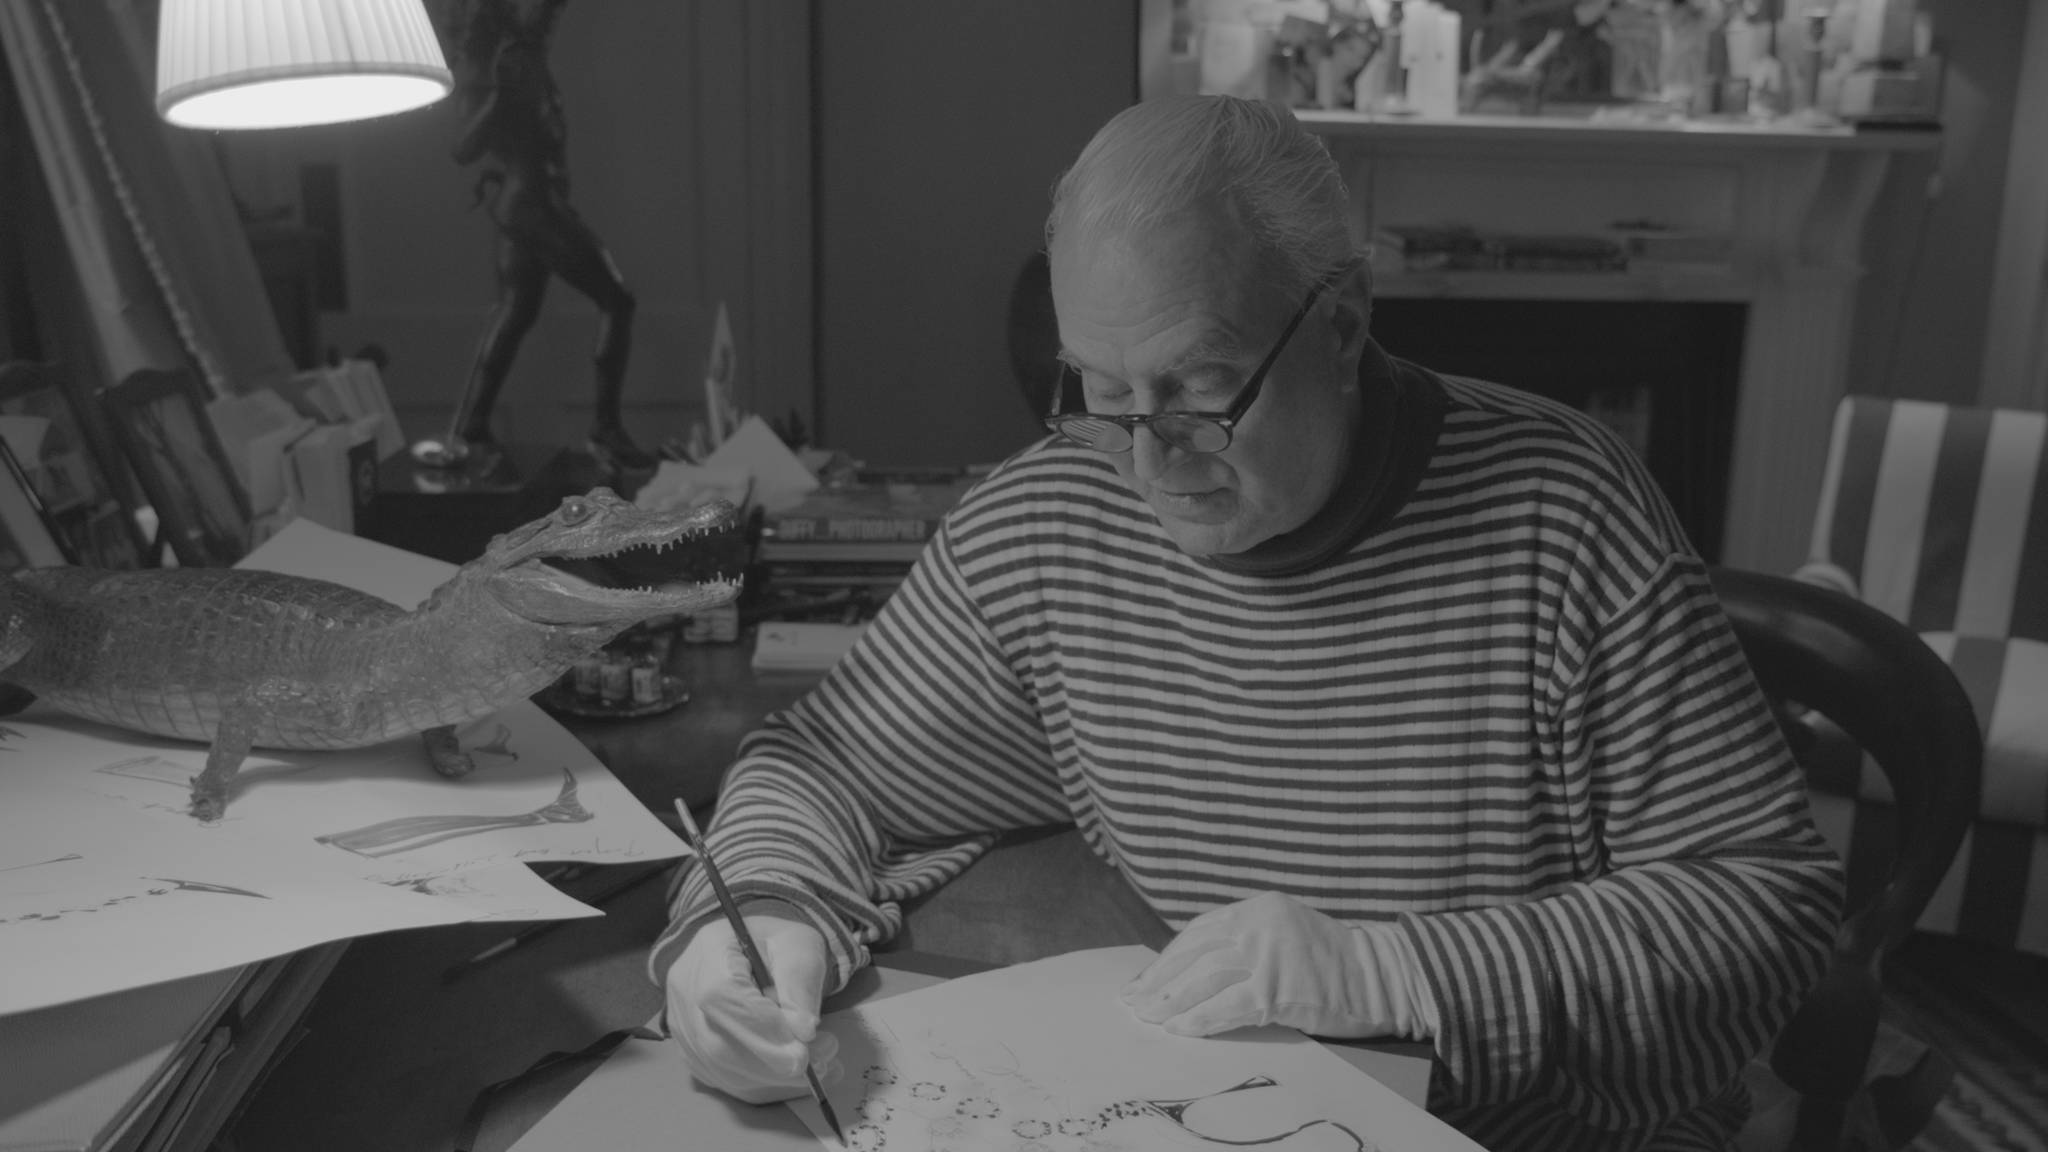 A black and white image of Manolo sketching a shoe. He is wearing a Breton turtle neck and white gloves.